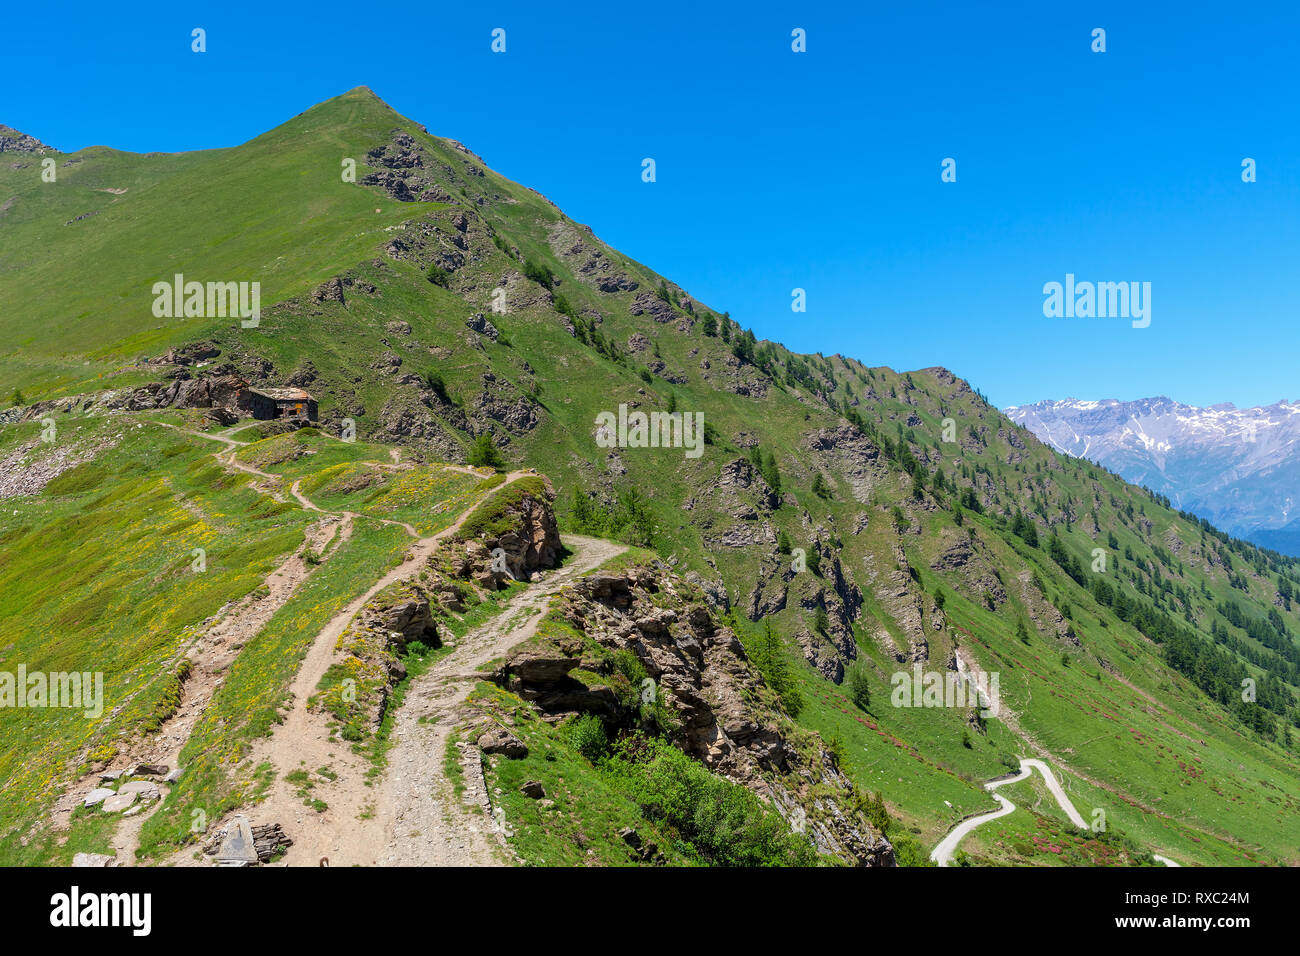 Narrow trail in the mountains at Colle delle Finestre in Piedmont, Northern Italy. - Stock Image